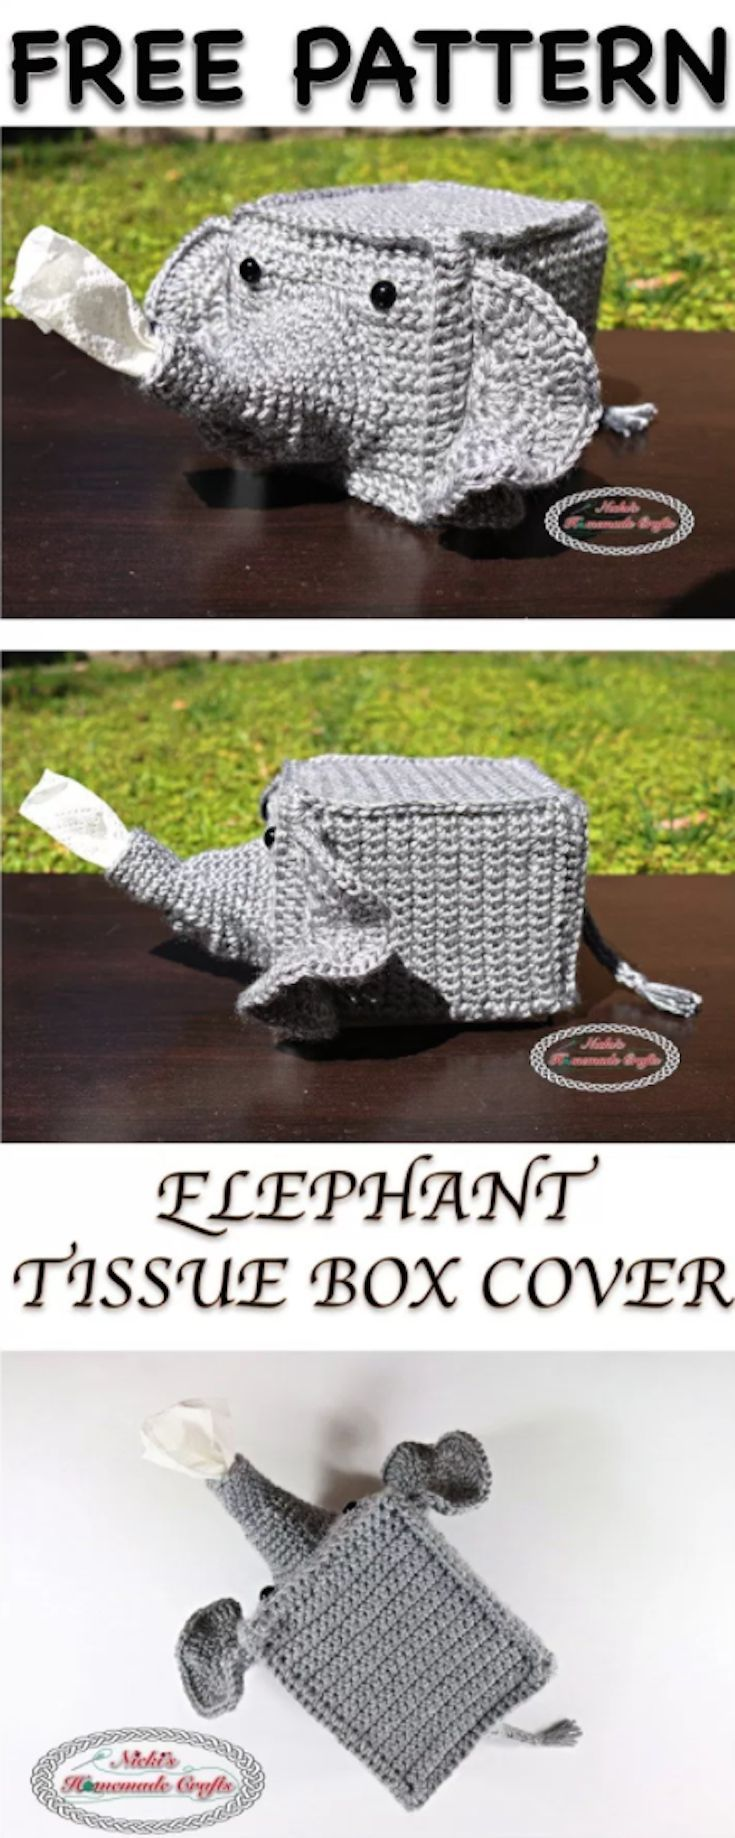 Free Crochet Pattern] Adorable Elephant Tissue Box Cover To Add A ...